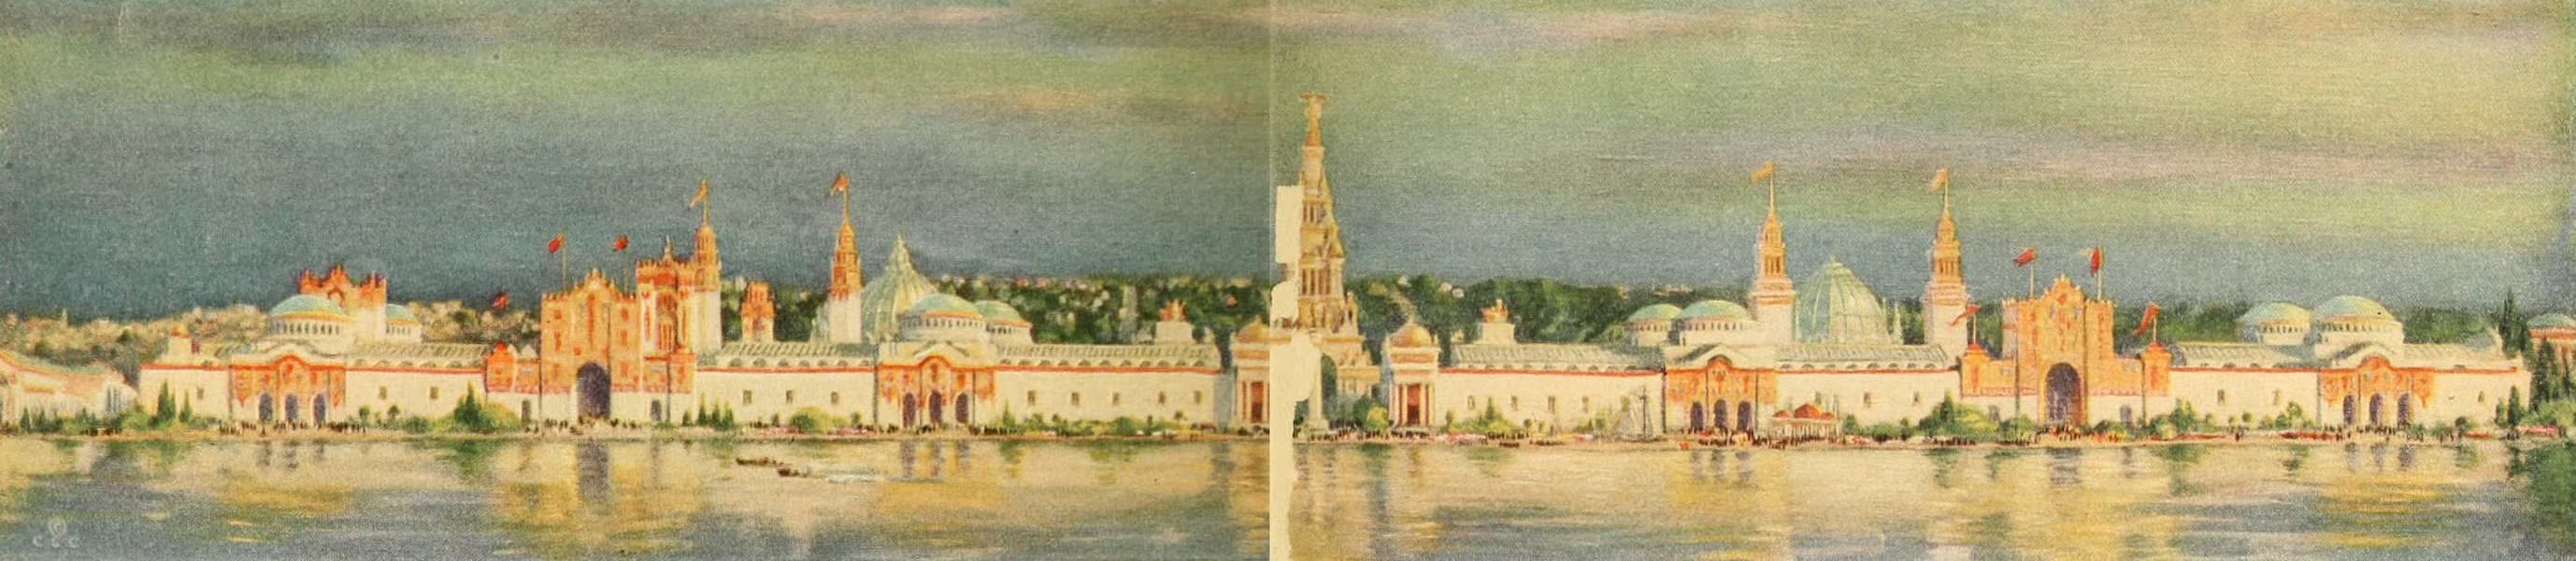 Panama-Pacific International Exposition - Panorama of Exhibit Palaces from San Francisco Bay (1913)